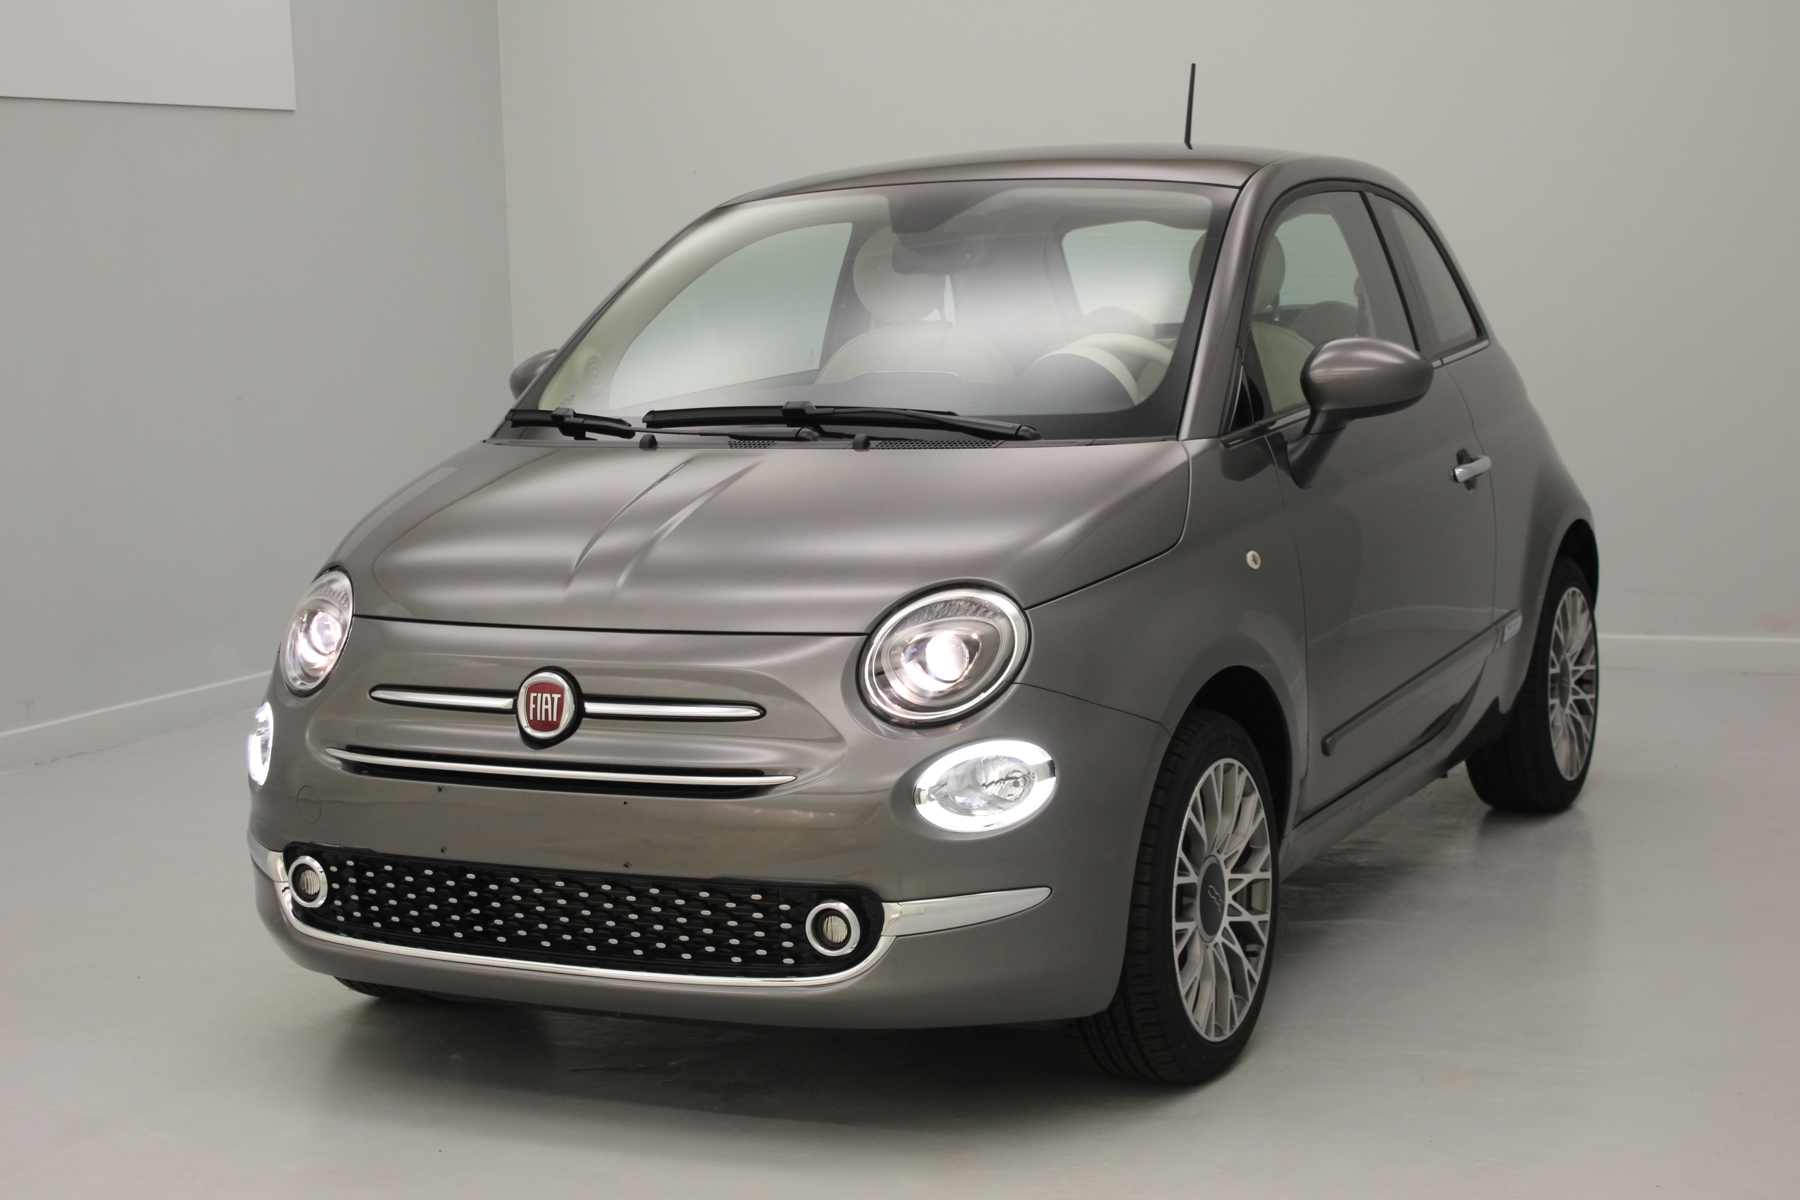 FIAT 500 1.2 69 ch Lounge Eco Pack Electroclash Grey + Climatisation automatique avec options